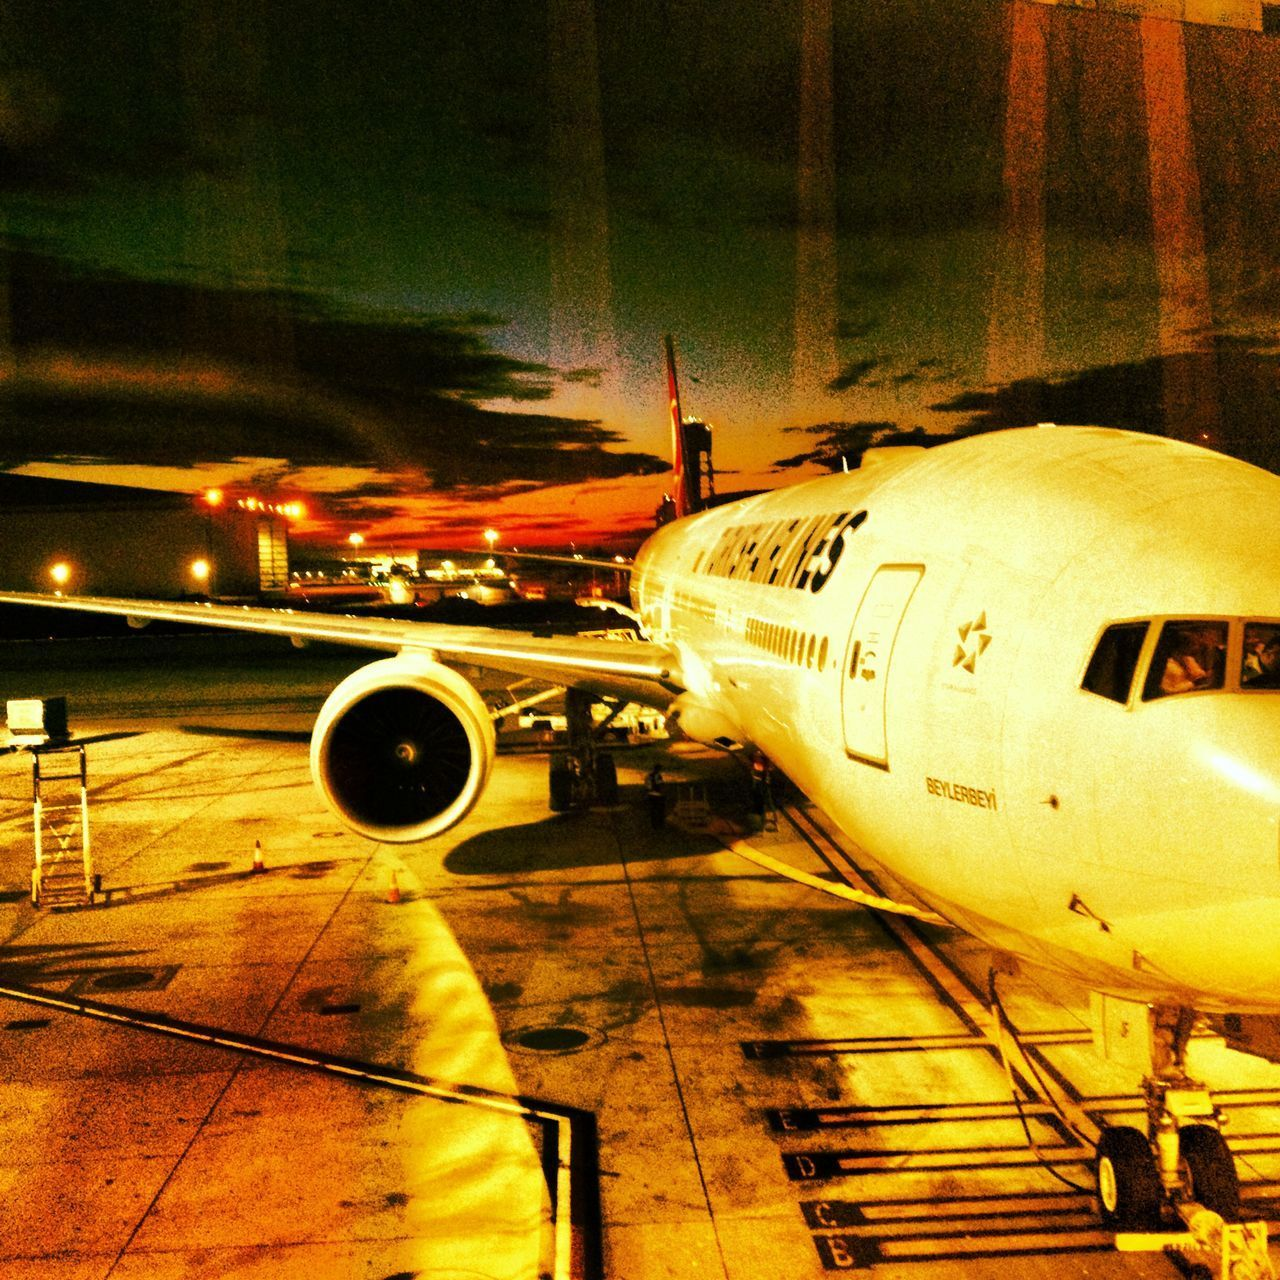 transportation, airplane, mode of transport, travel, airport, air vehicle, airport runway, commercial airplane, journey, public transportation, no people, night, runway, outdoors, airport departure area, aerospace industry